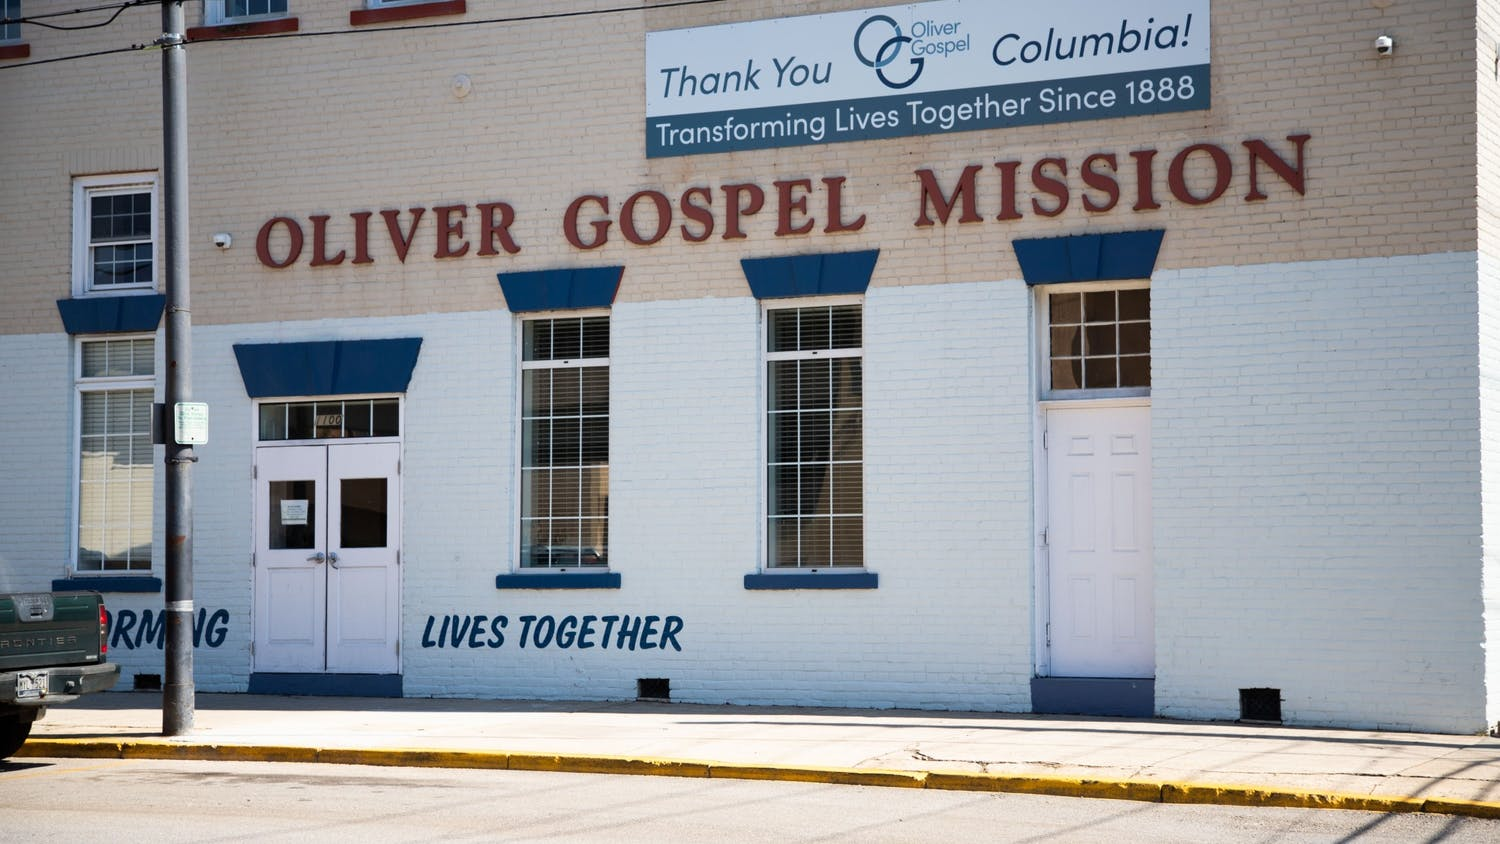 The Oliver Gospel Mission provides food and emergency shelter for the Columbia homeless population.